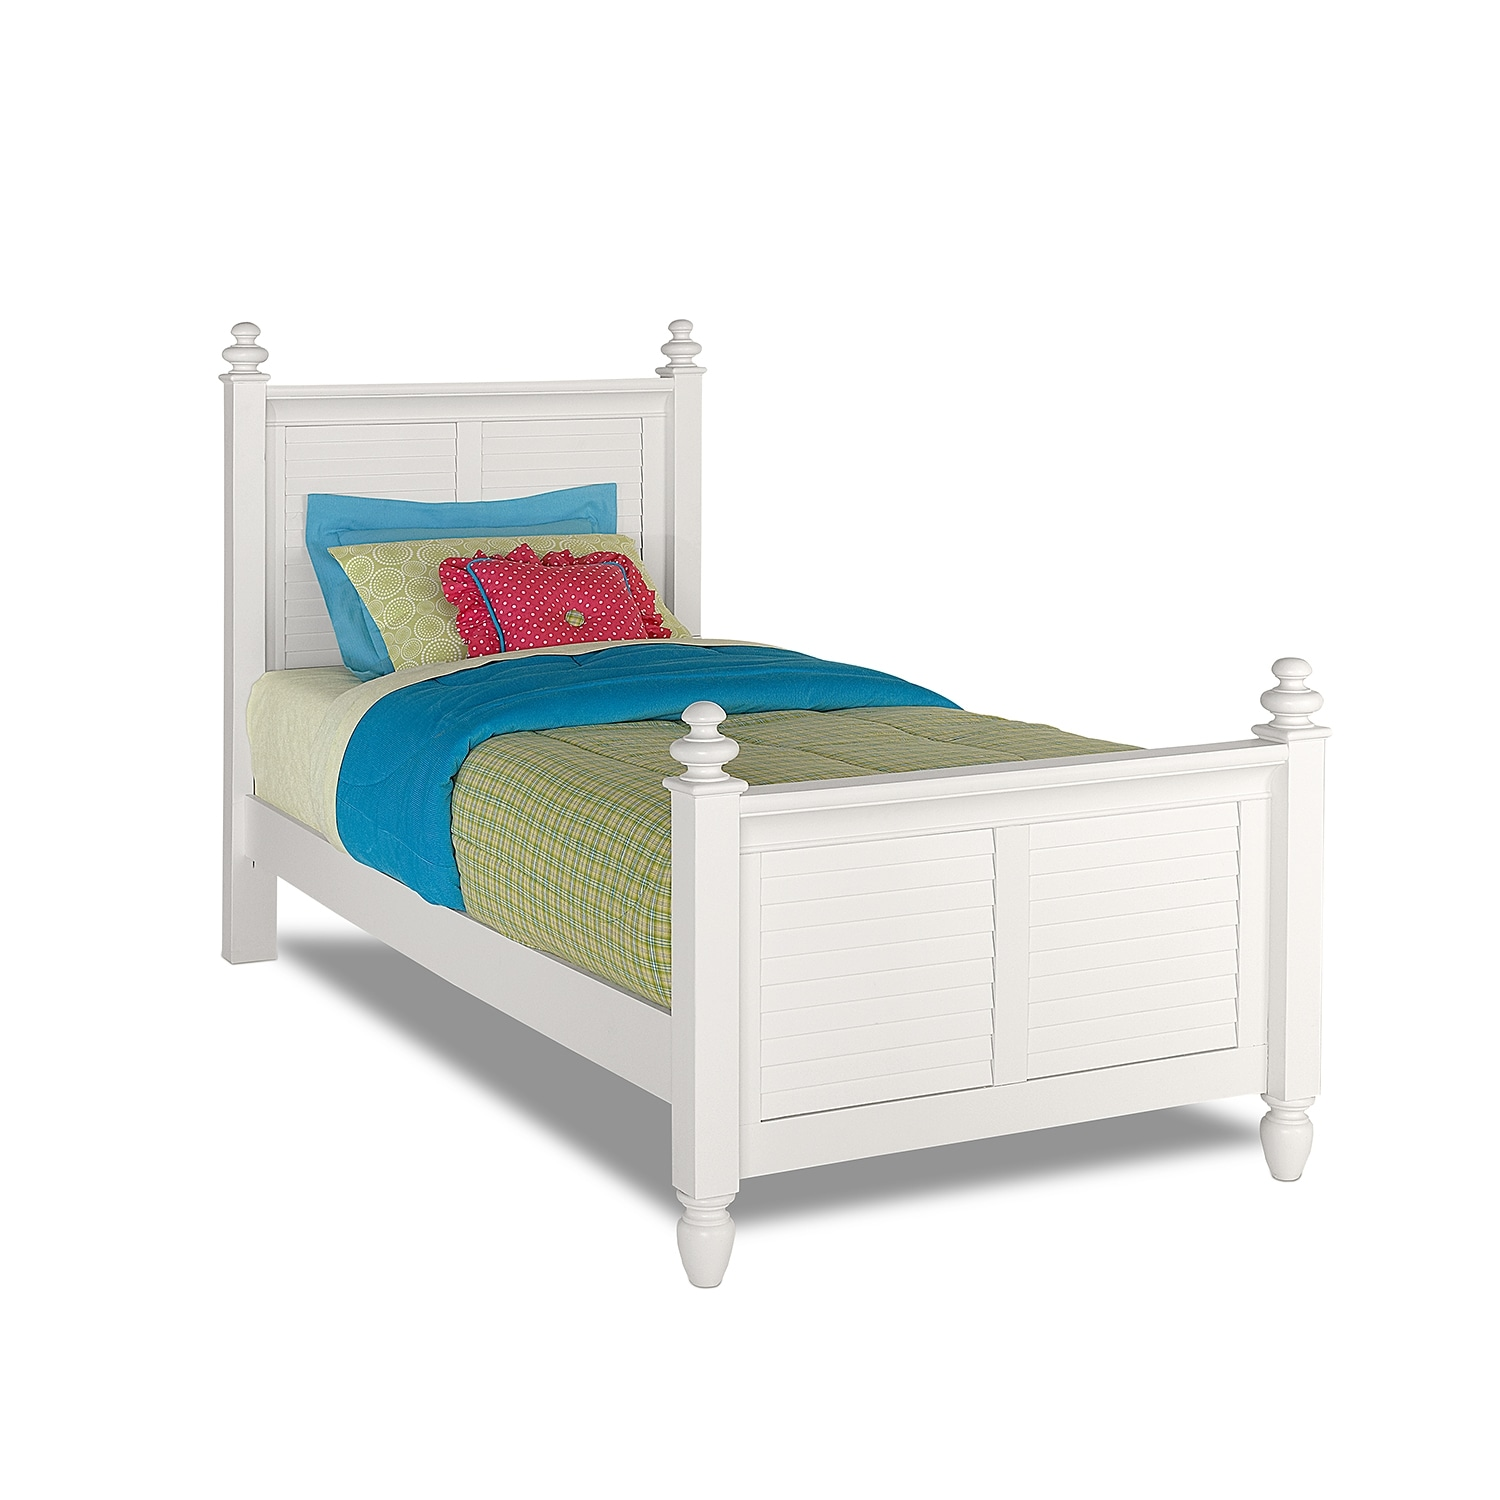 Seaside Full Bed - White